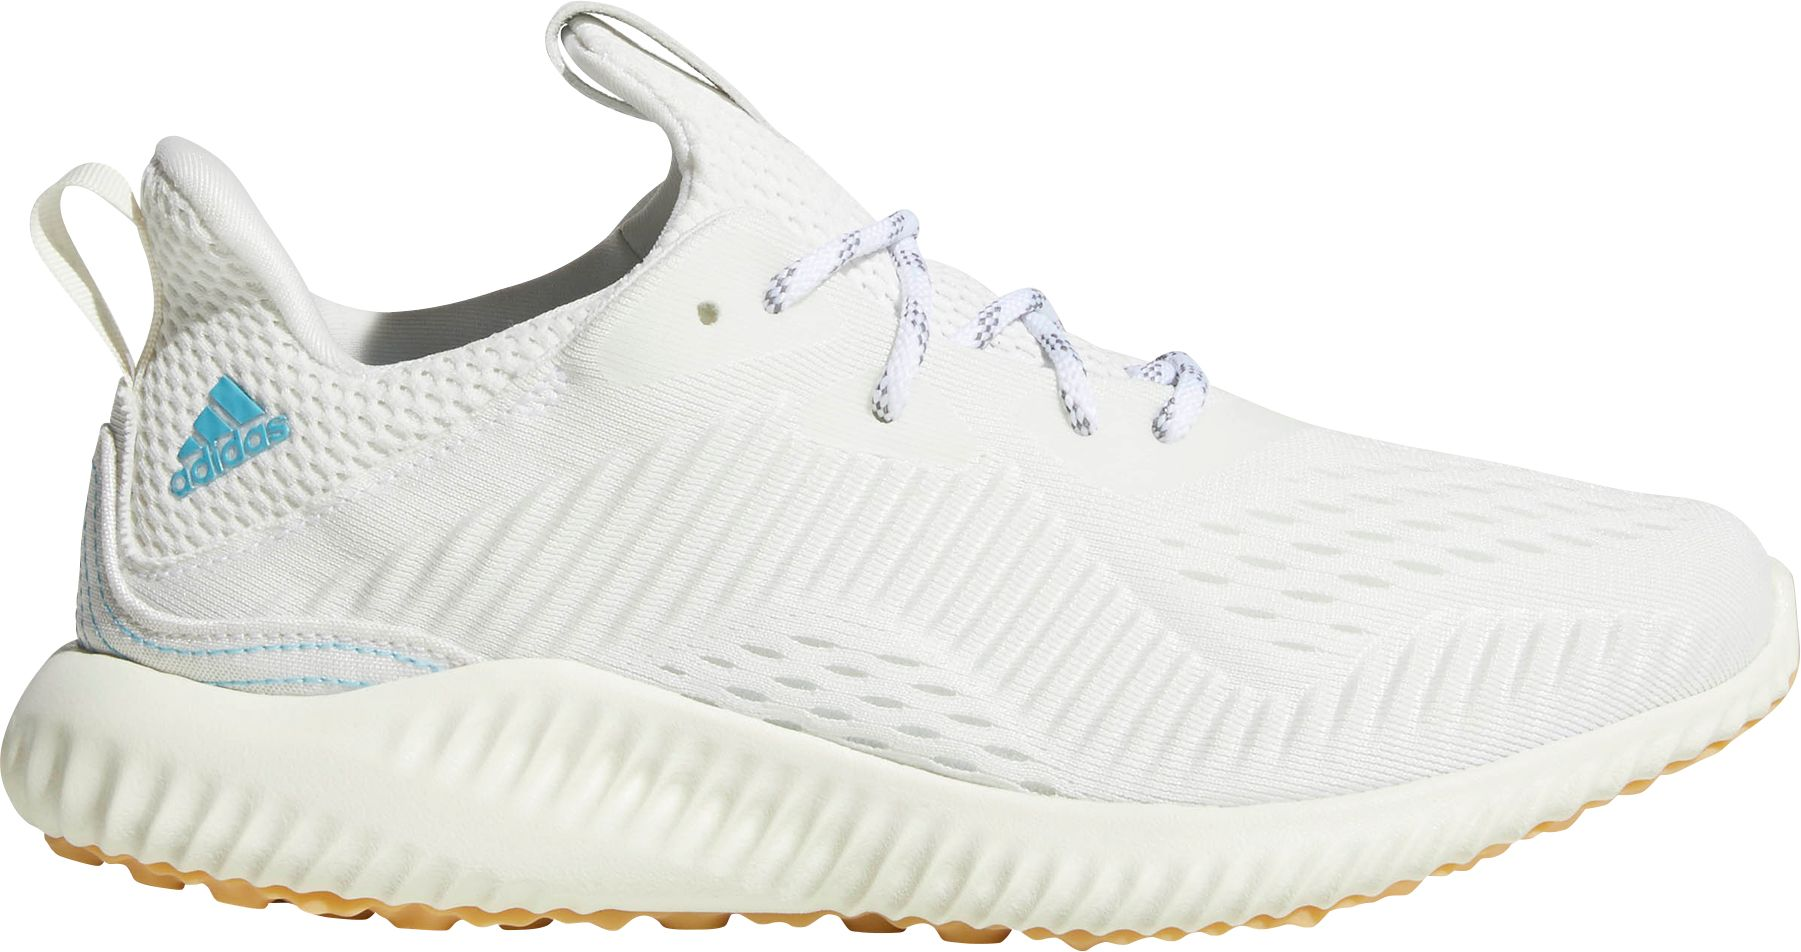 9be3b1914 adidas Women s alphabounce 1 Parley Running Shoes